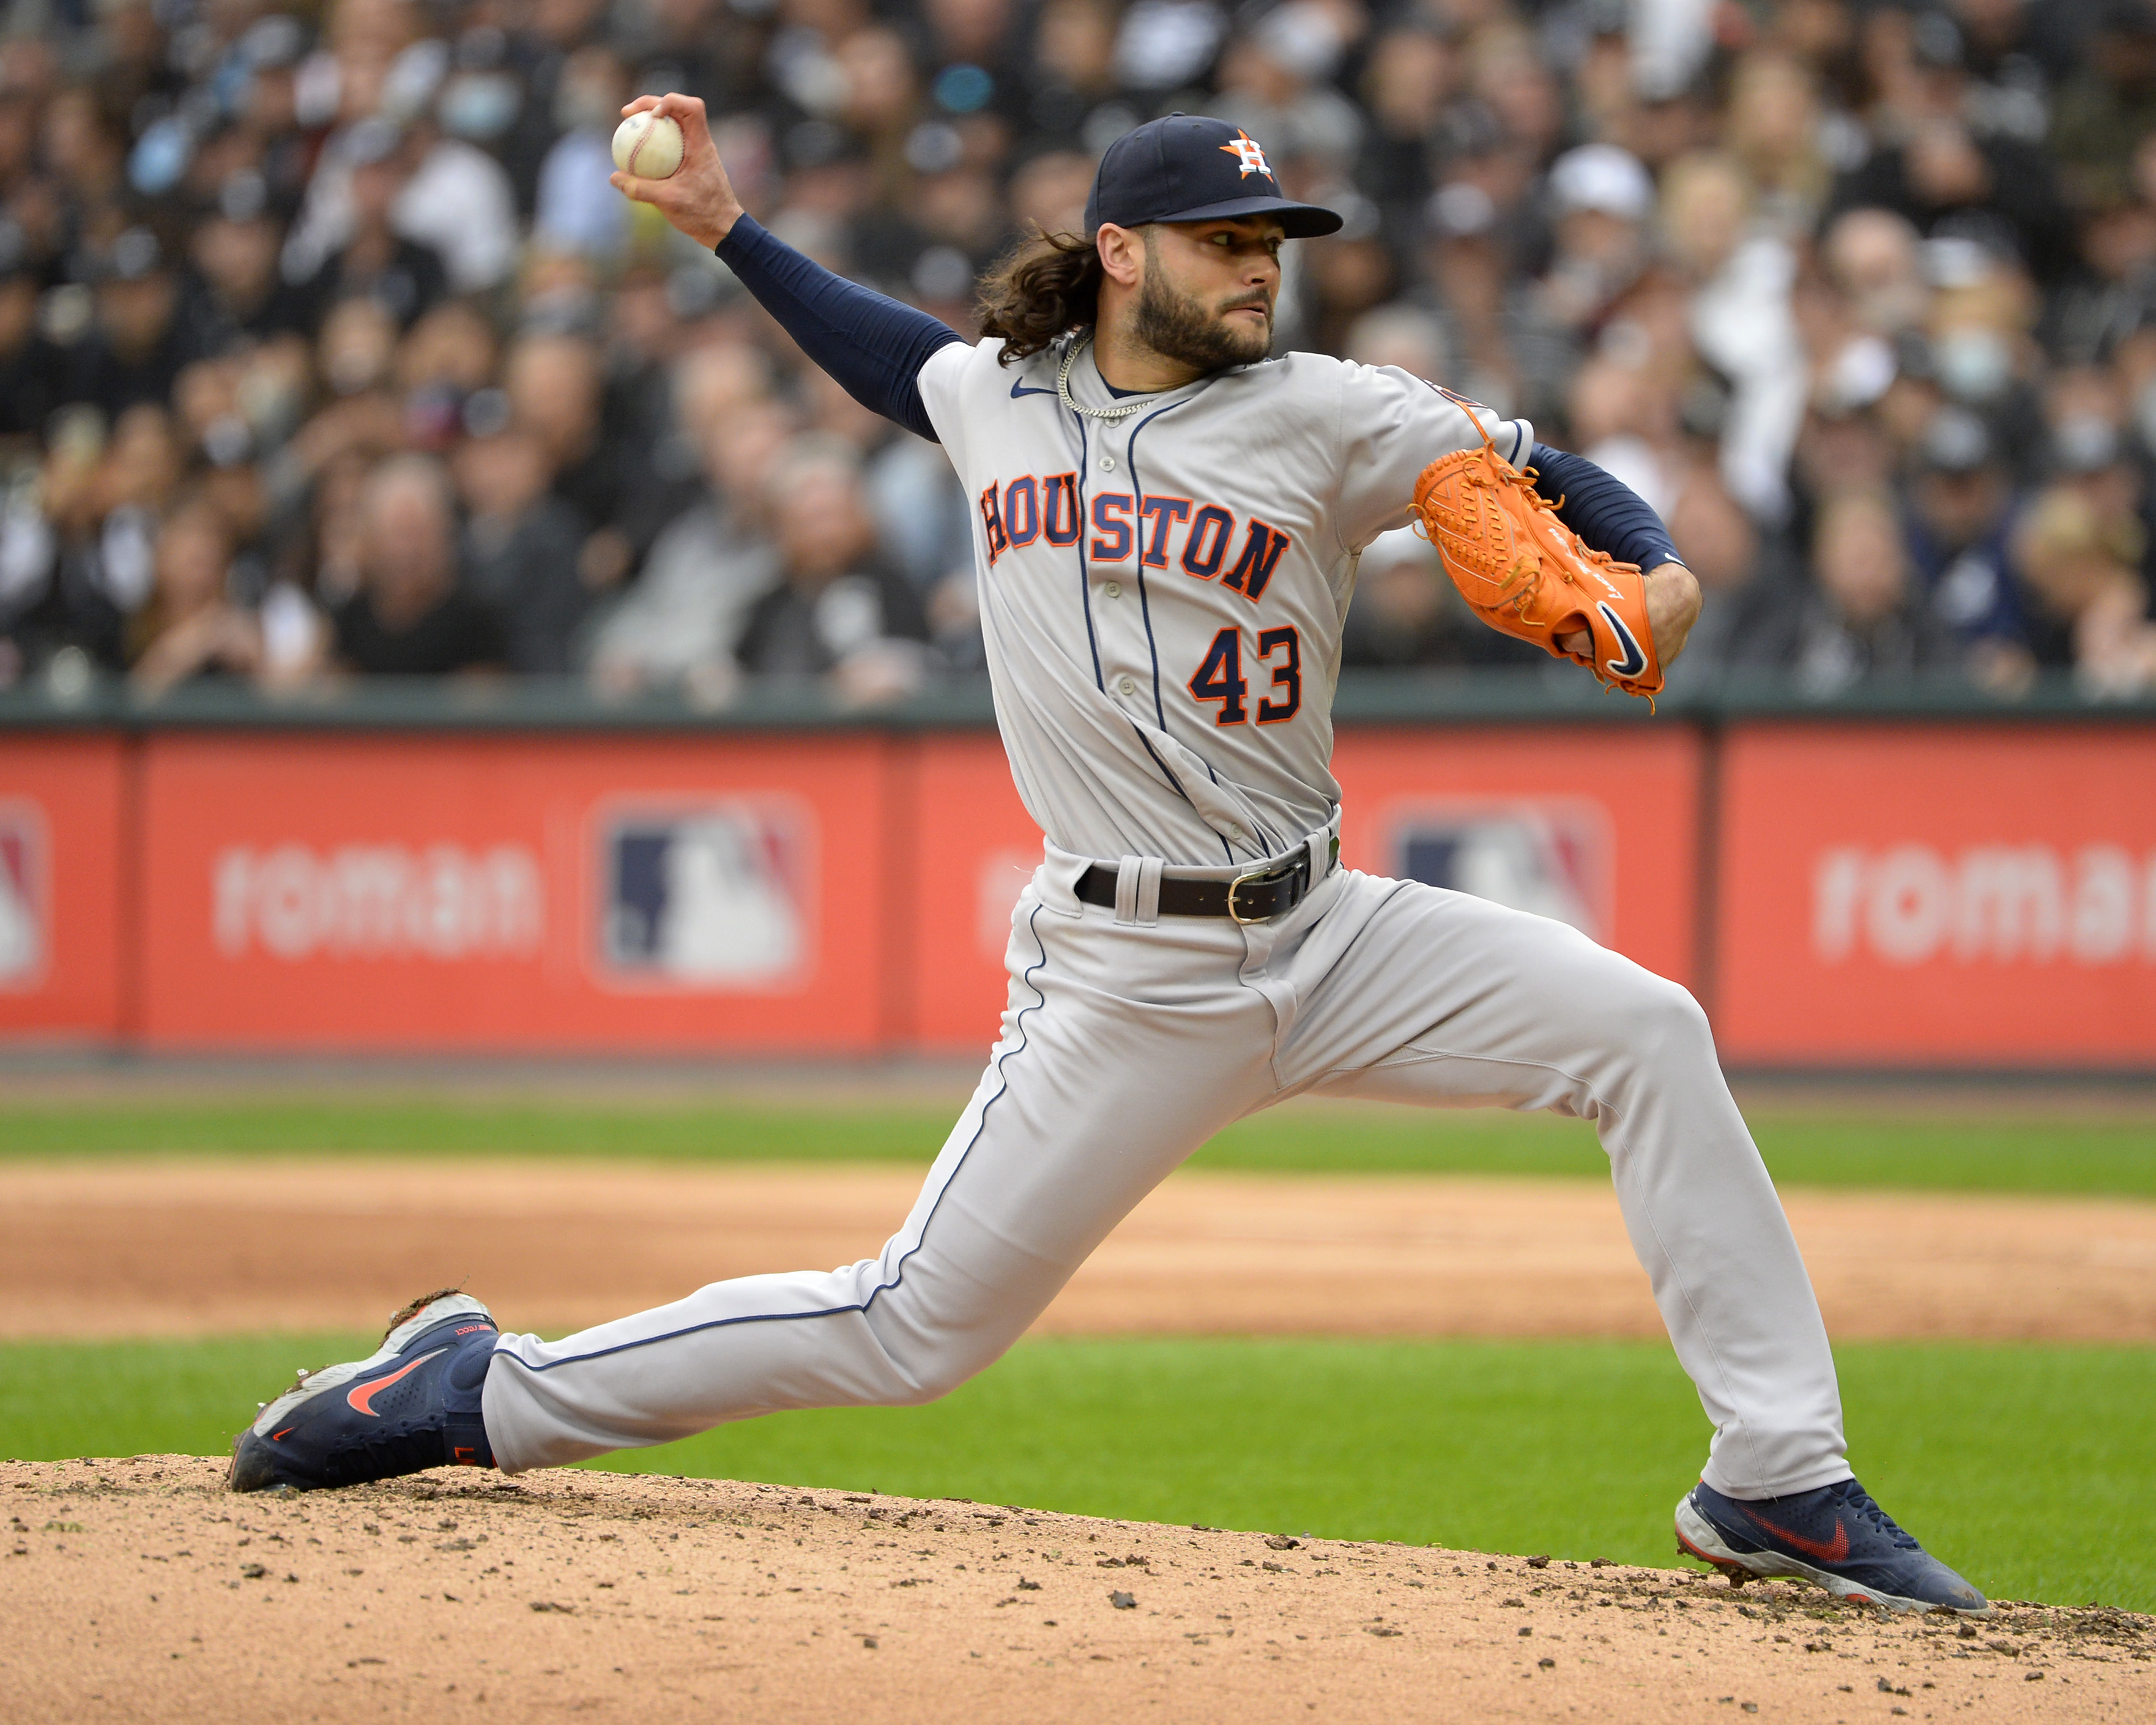 Lance McCullers Jr. #43 of the Houston Astros pitches during Game Four of the American League Division Series against the Chicago White Sox on October 12, 2021 at Guaranteed Rate Field in Chicago, Illinois.